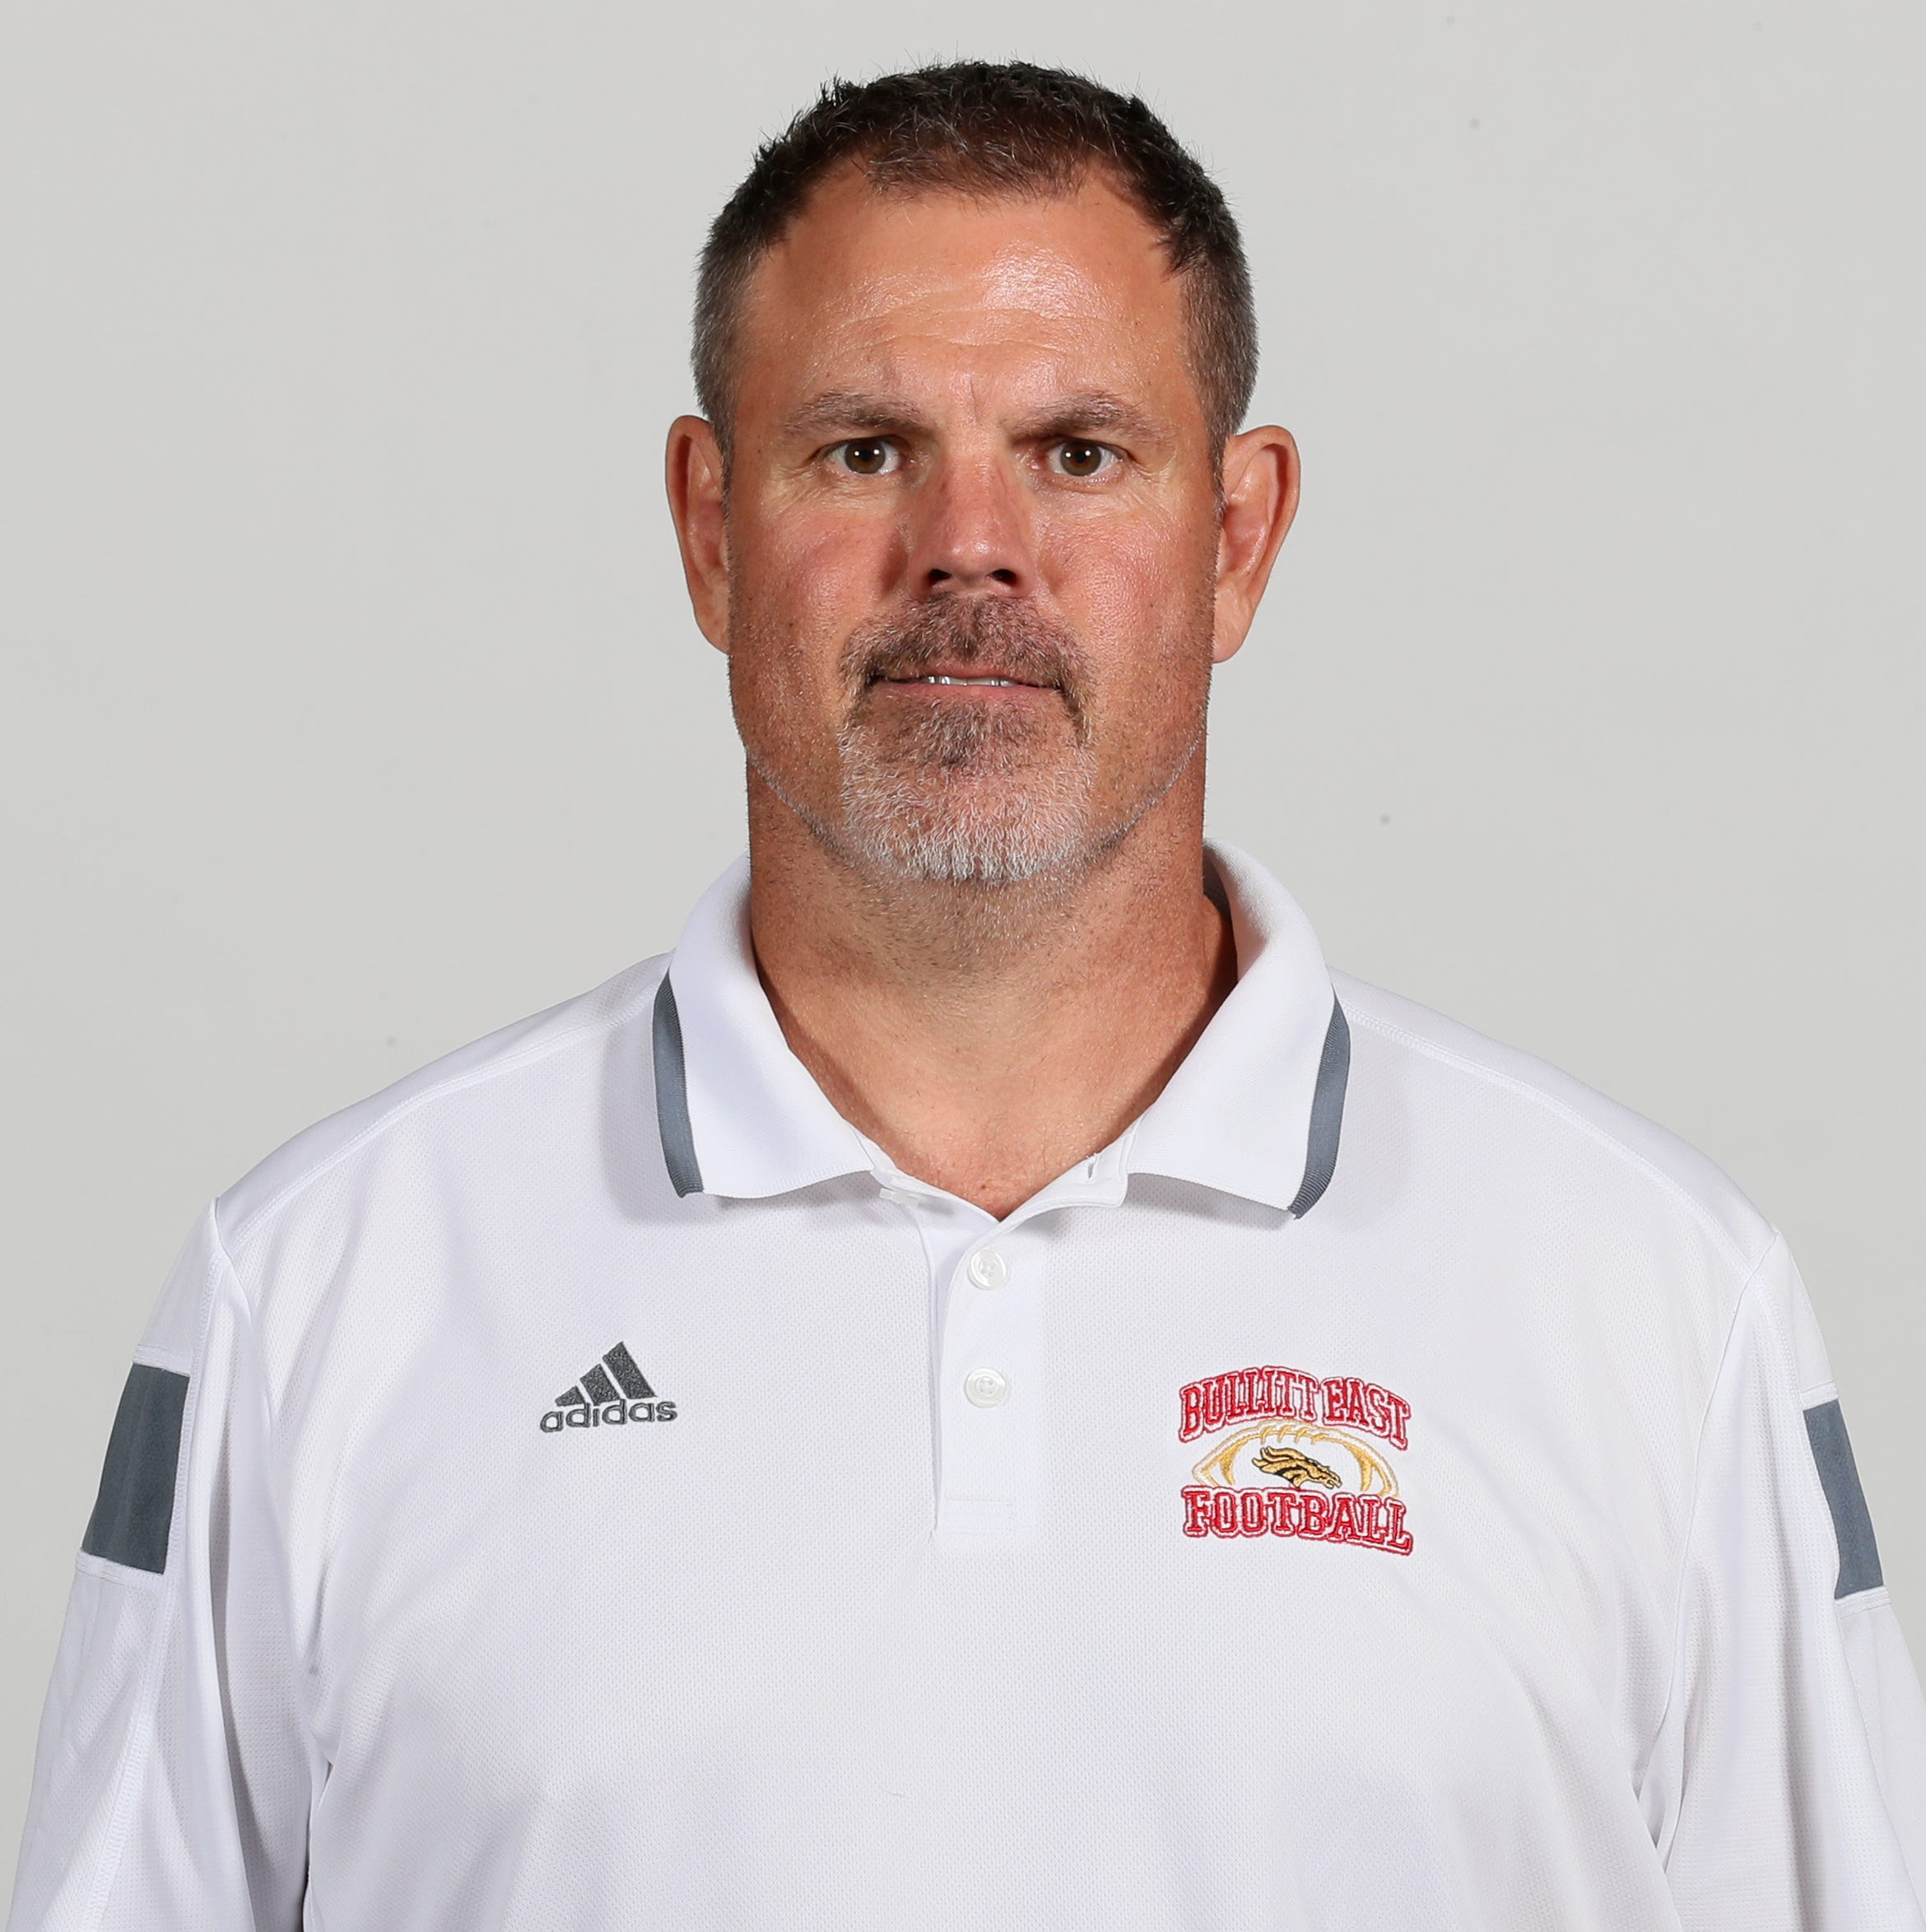 Mark Sander steps down as football coach at Bullitt East High School